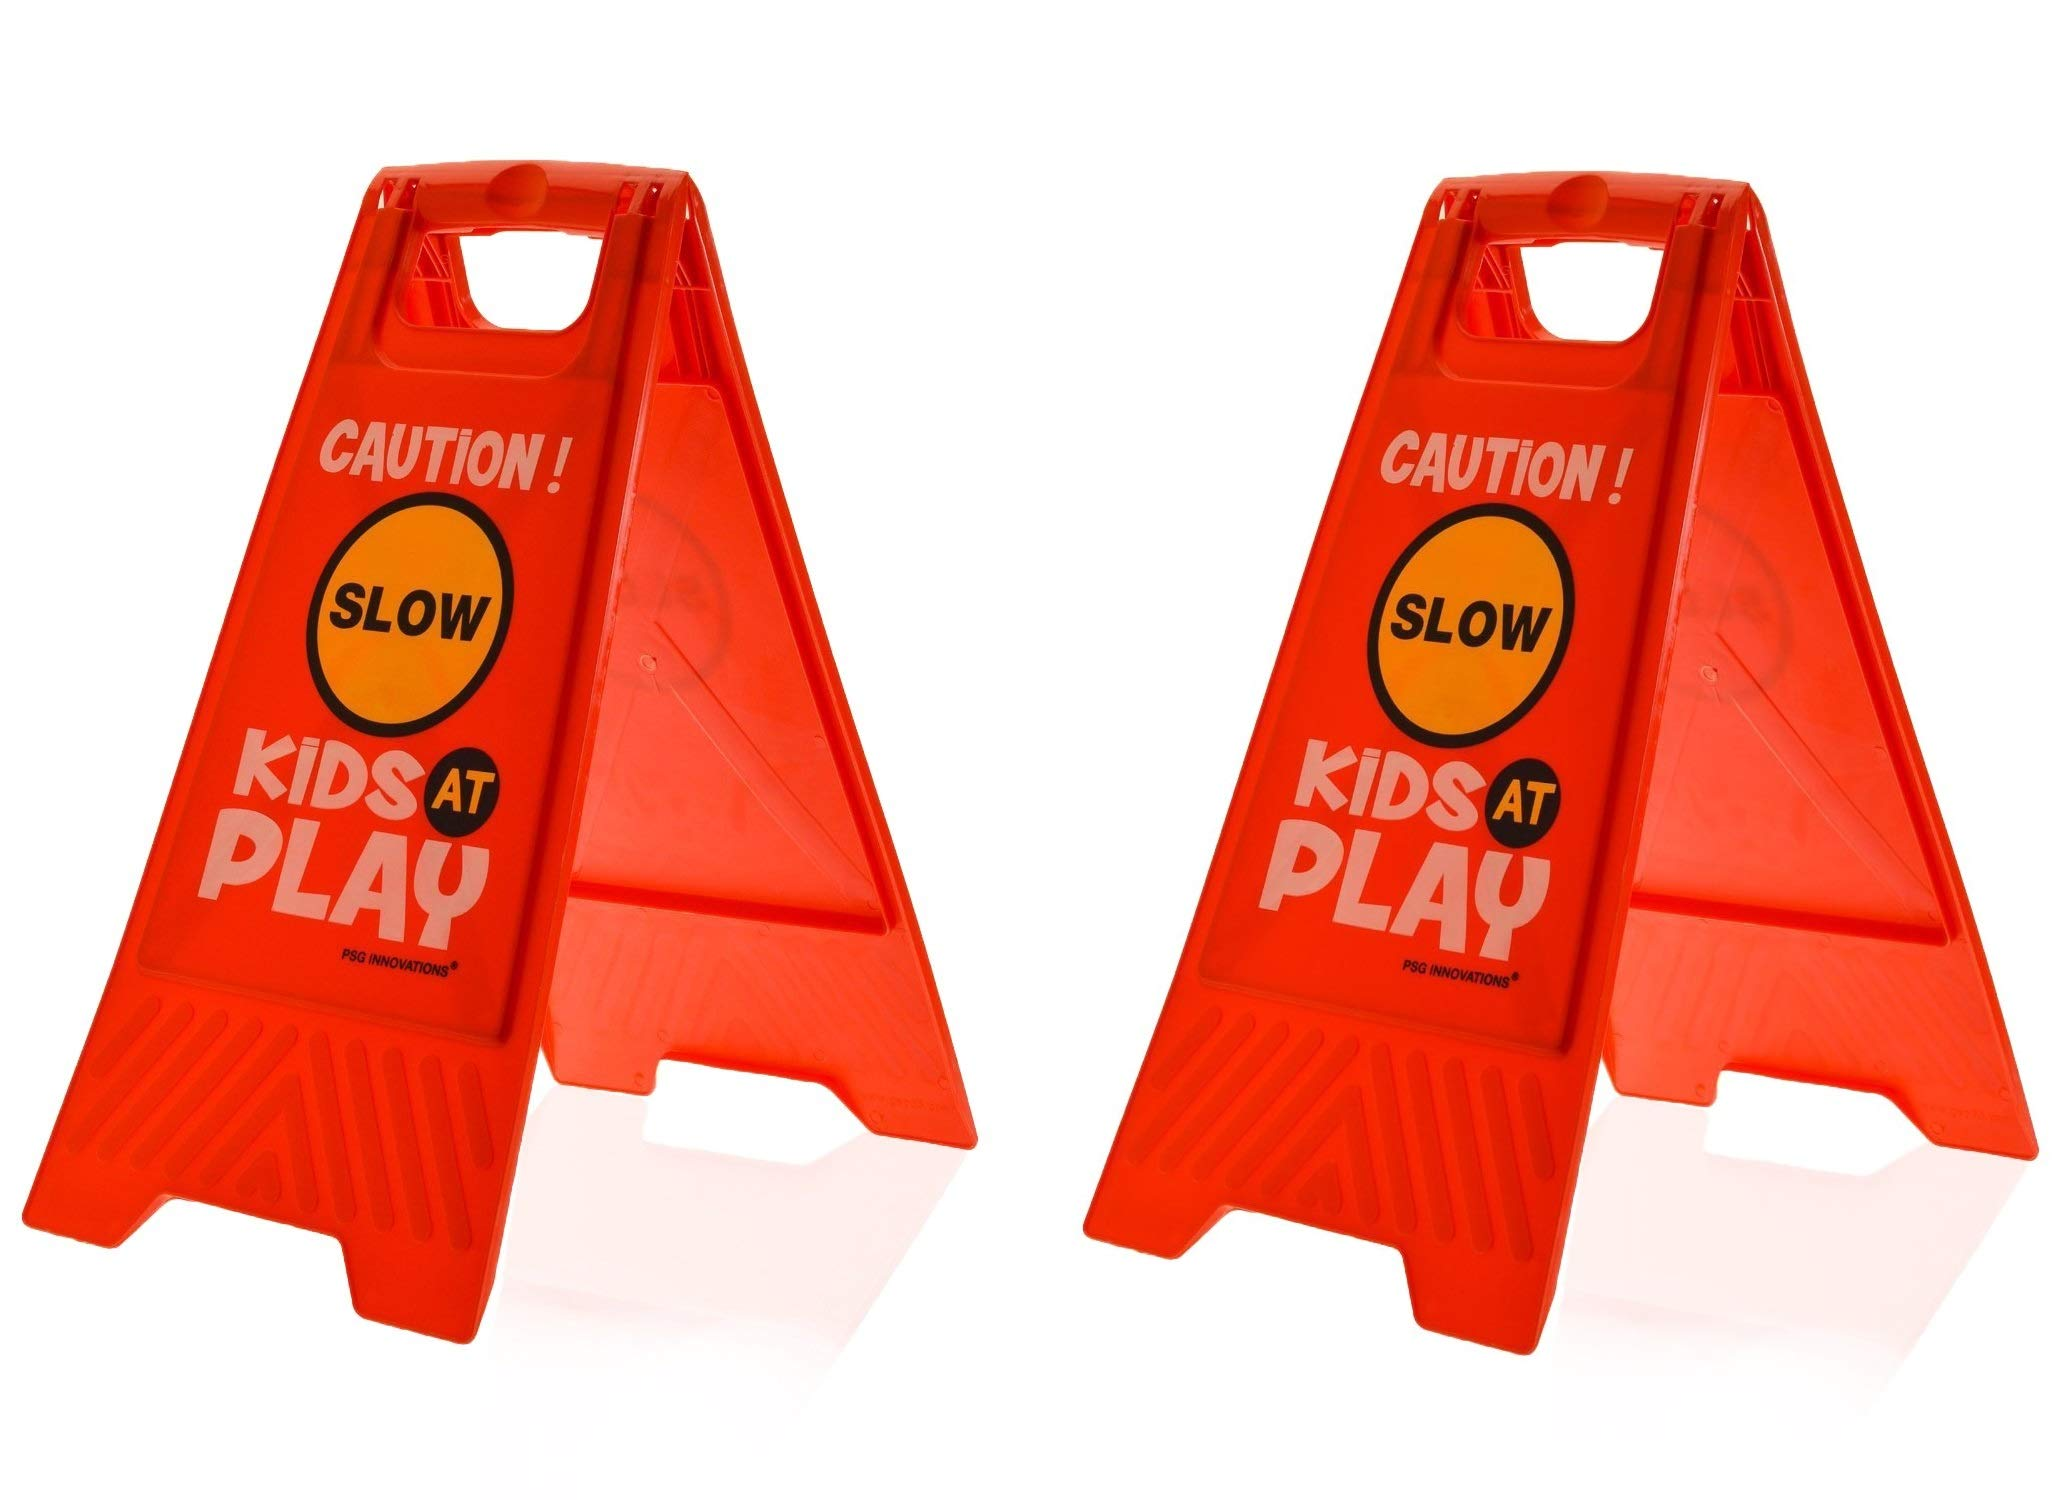 Essentially Yours 2 Pack Kids Playing Safety Floor Sign for Yards and Driveways (Double-Sided, Red) - Caution, Slow, Kids at Play